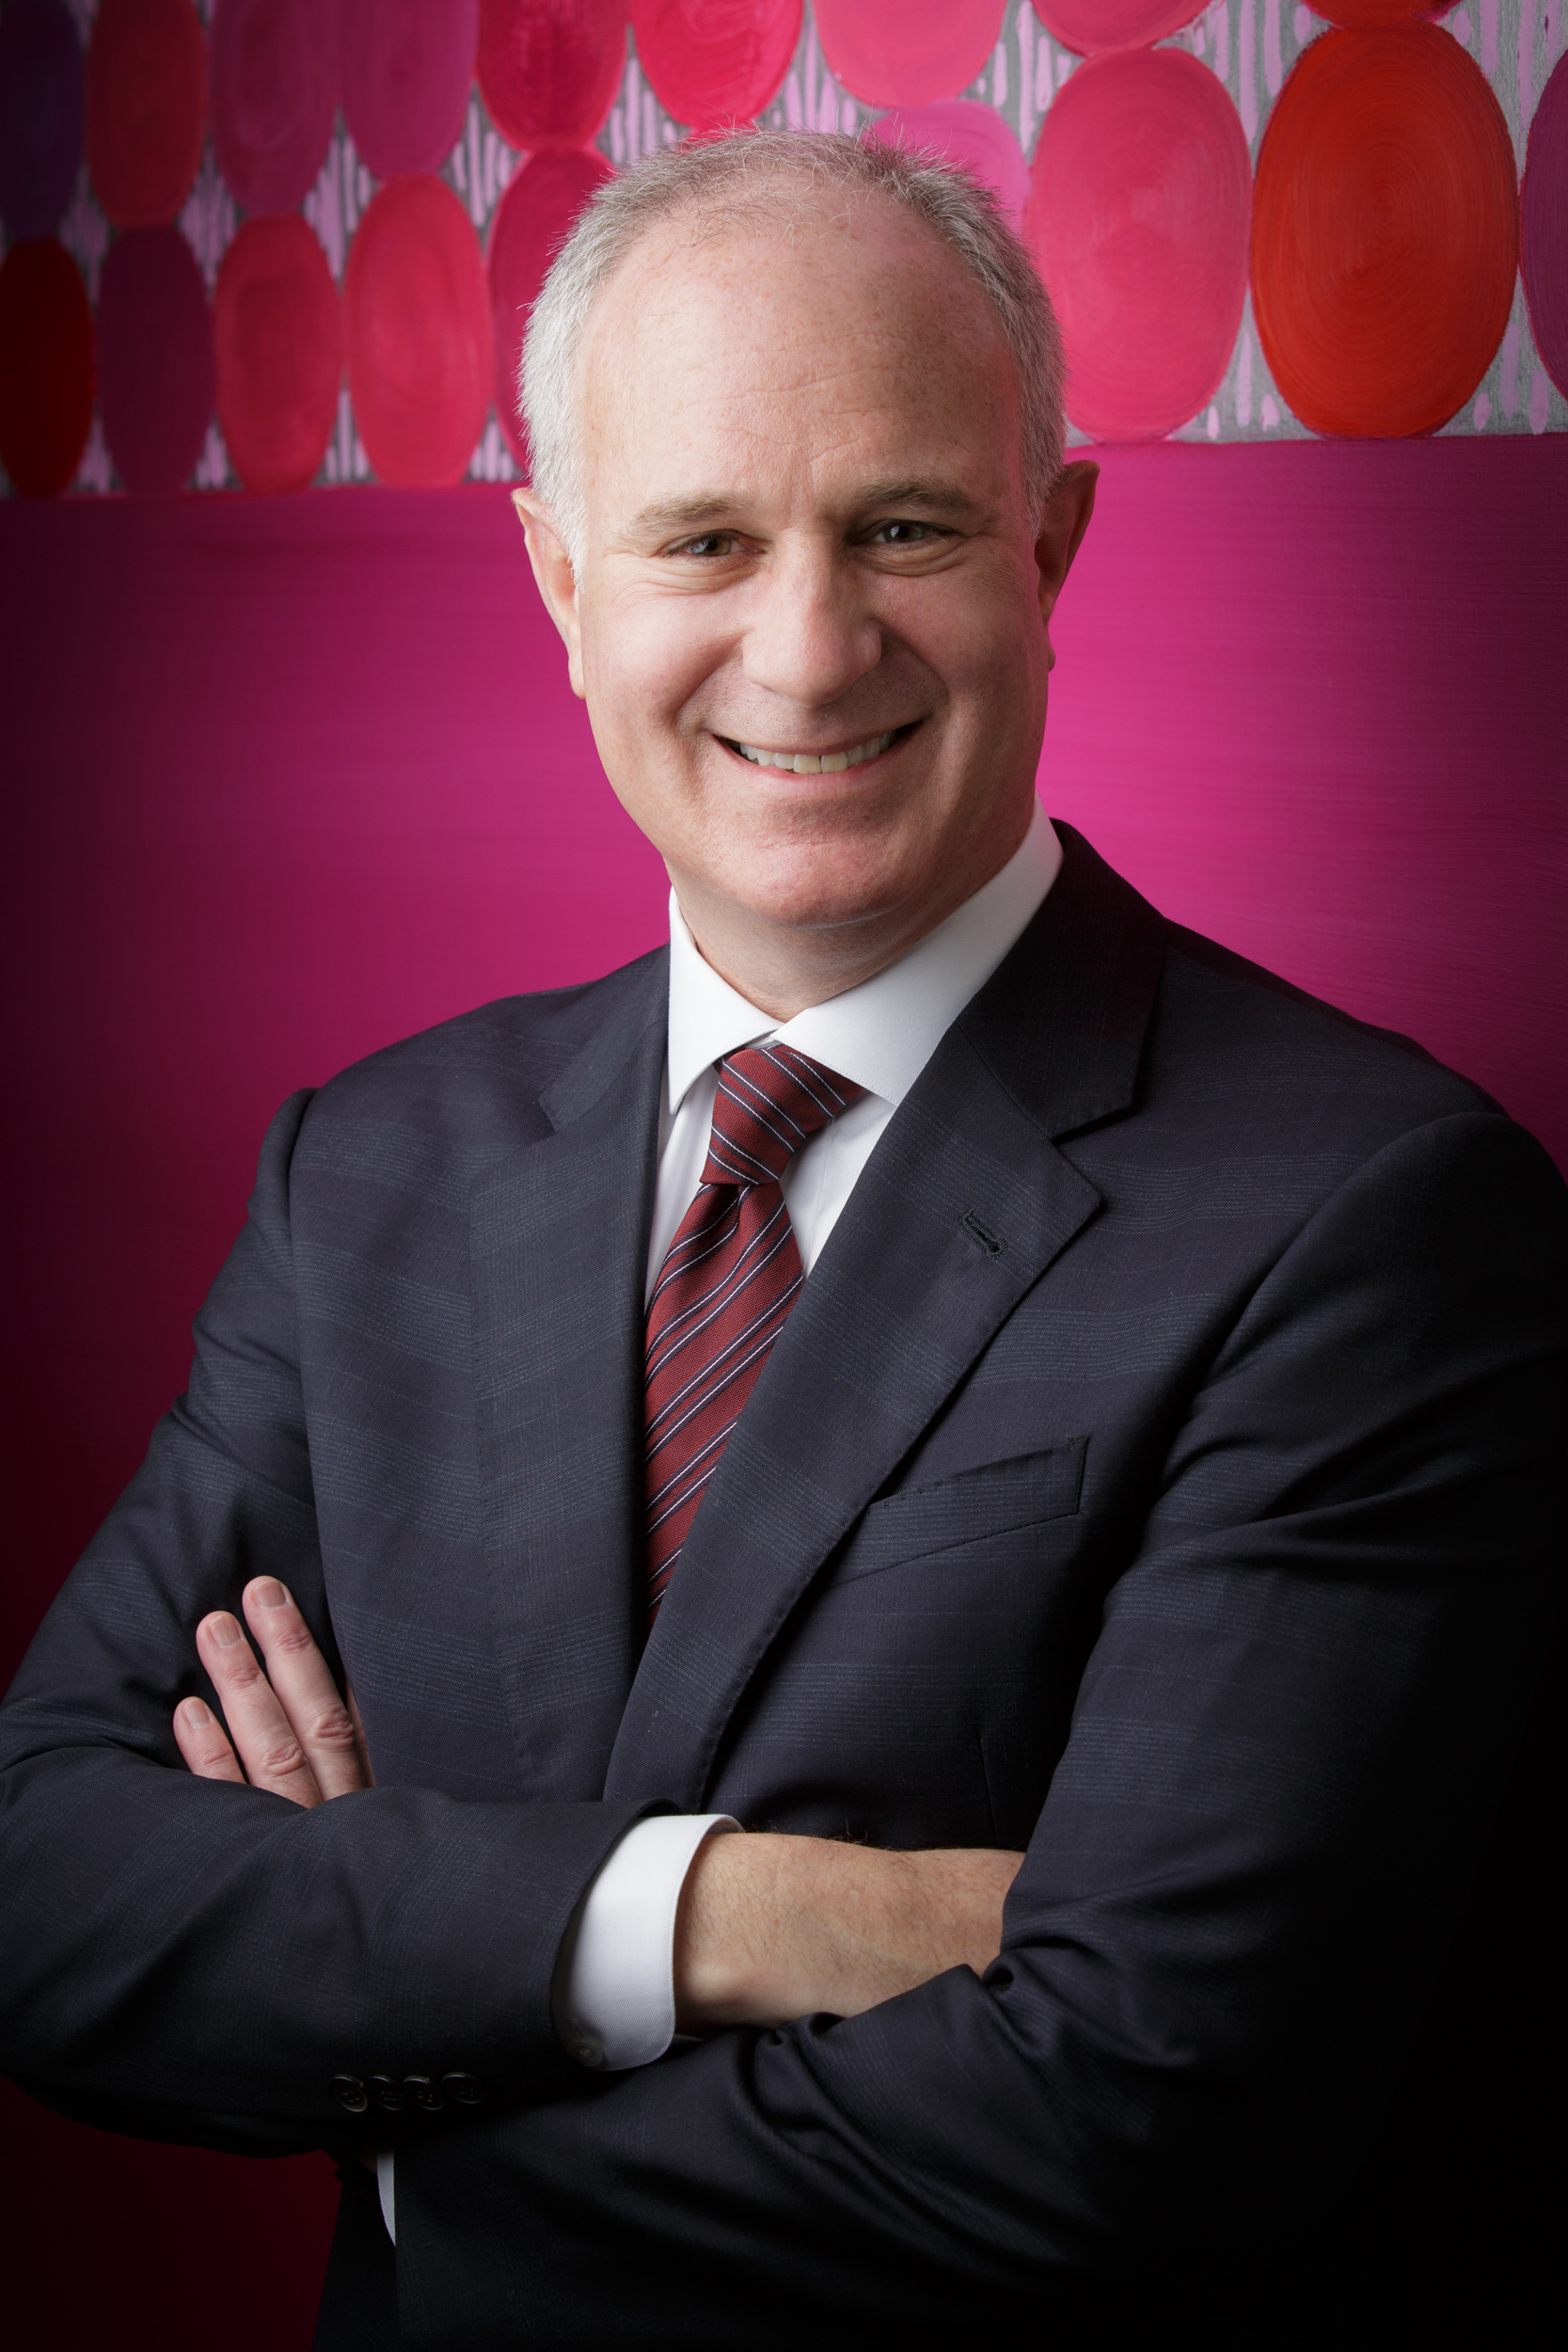 David Udell, Group President - ASPAC, Hyatt Hotels Corporation (Photo: Business Wire)